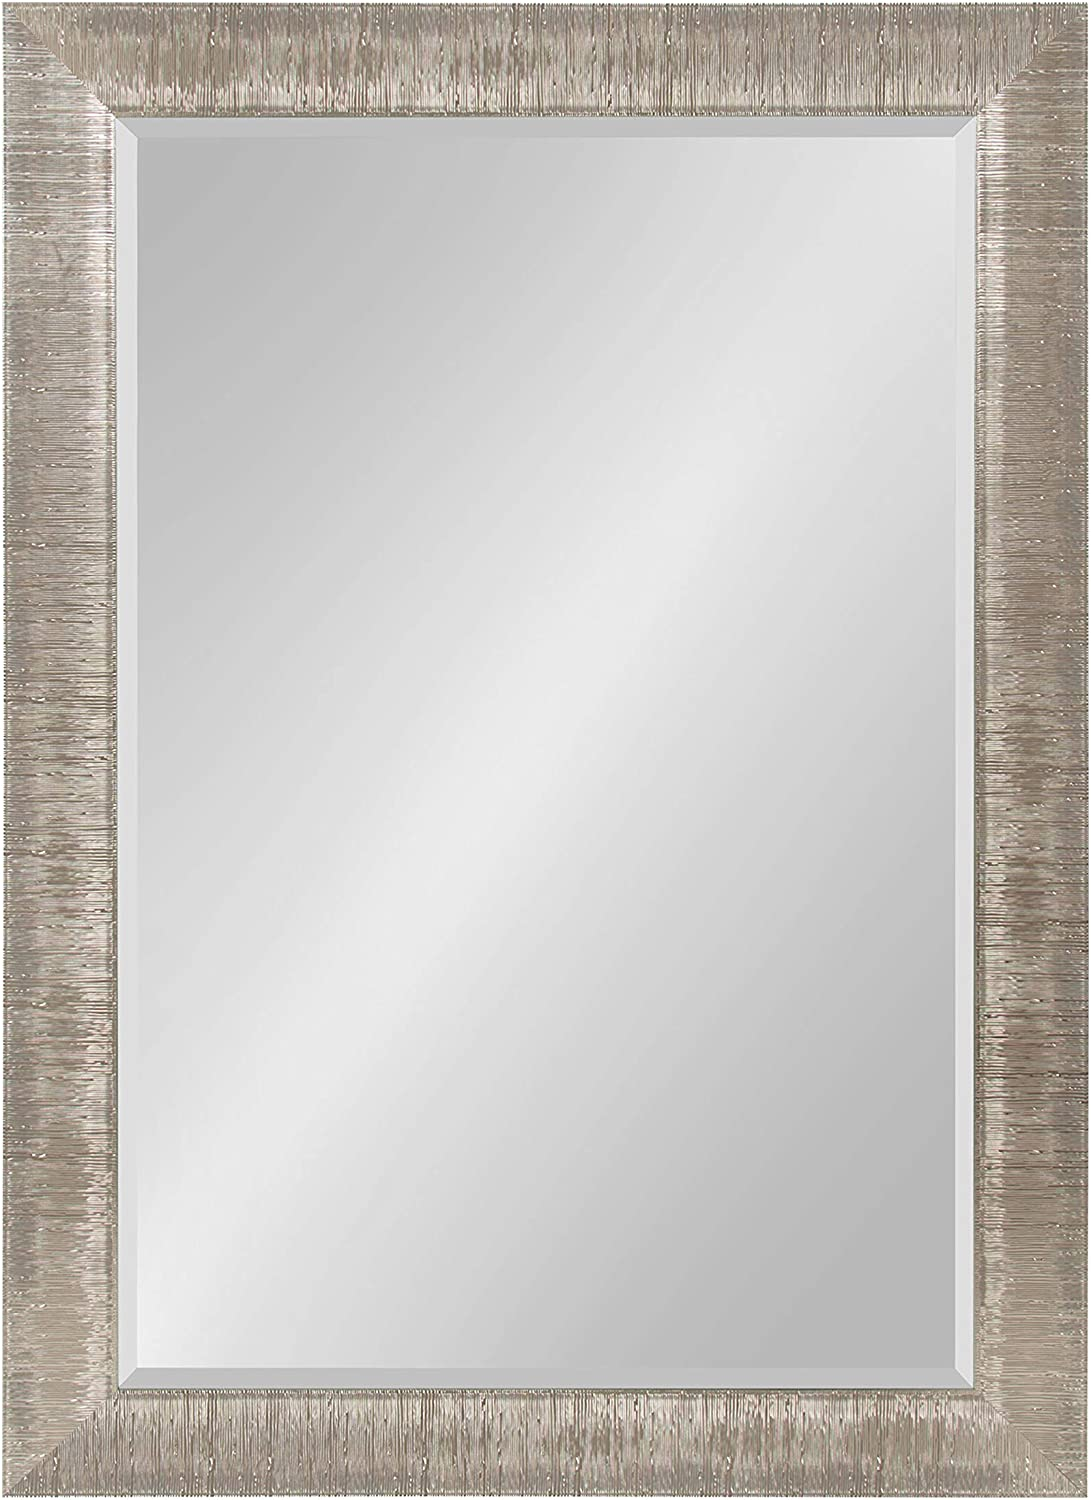 Kate and Laurel Reyna Framed Wall Mirror, 29.75x41.75, Silver